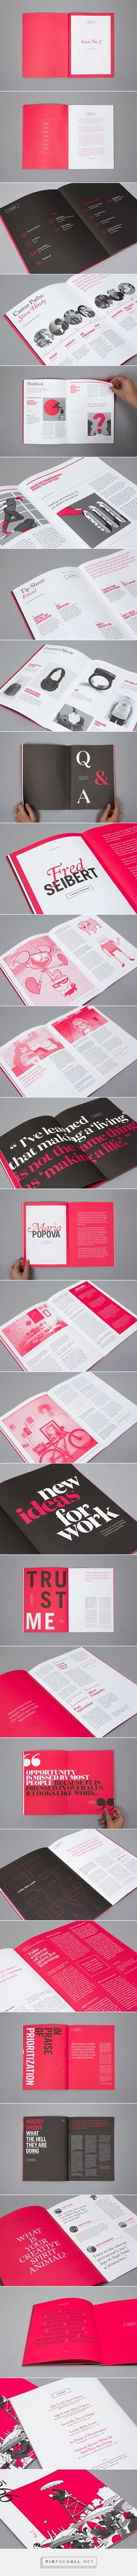 99U Quarterly Magazine :: Issue No.2 on Behance - created via https://pinthemall.net